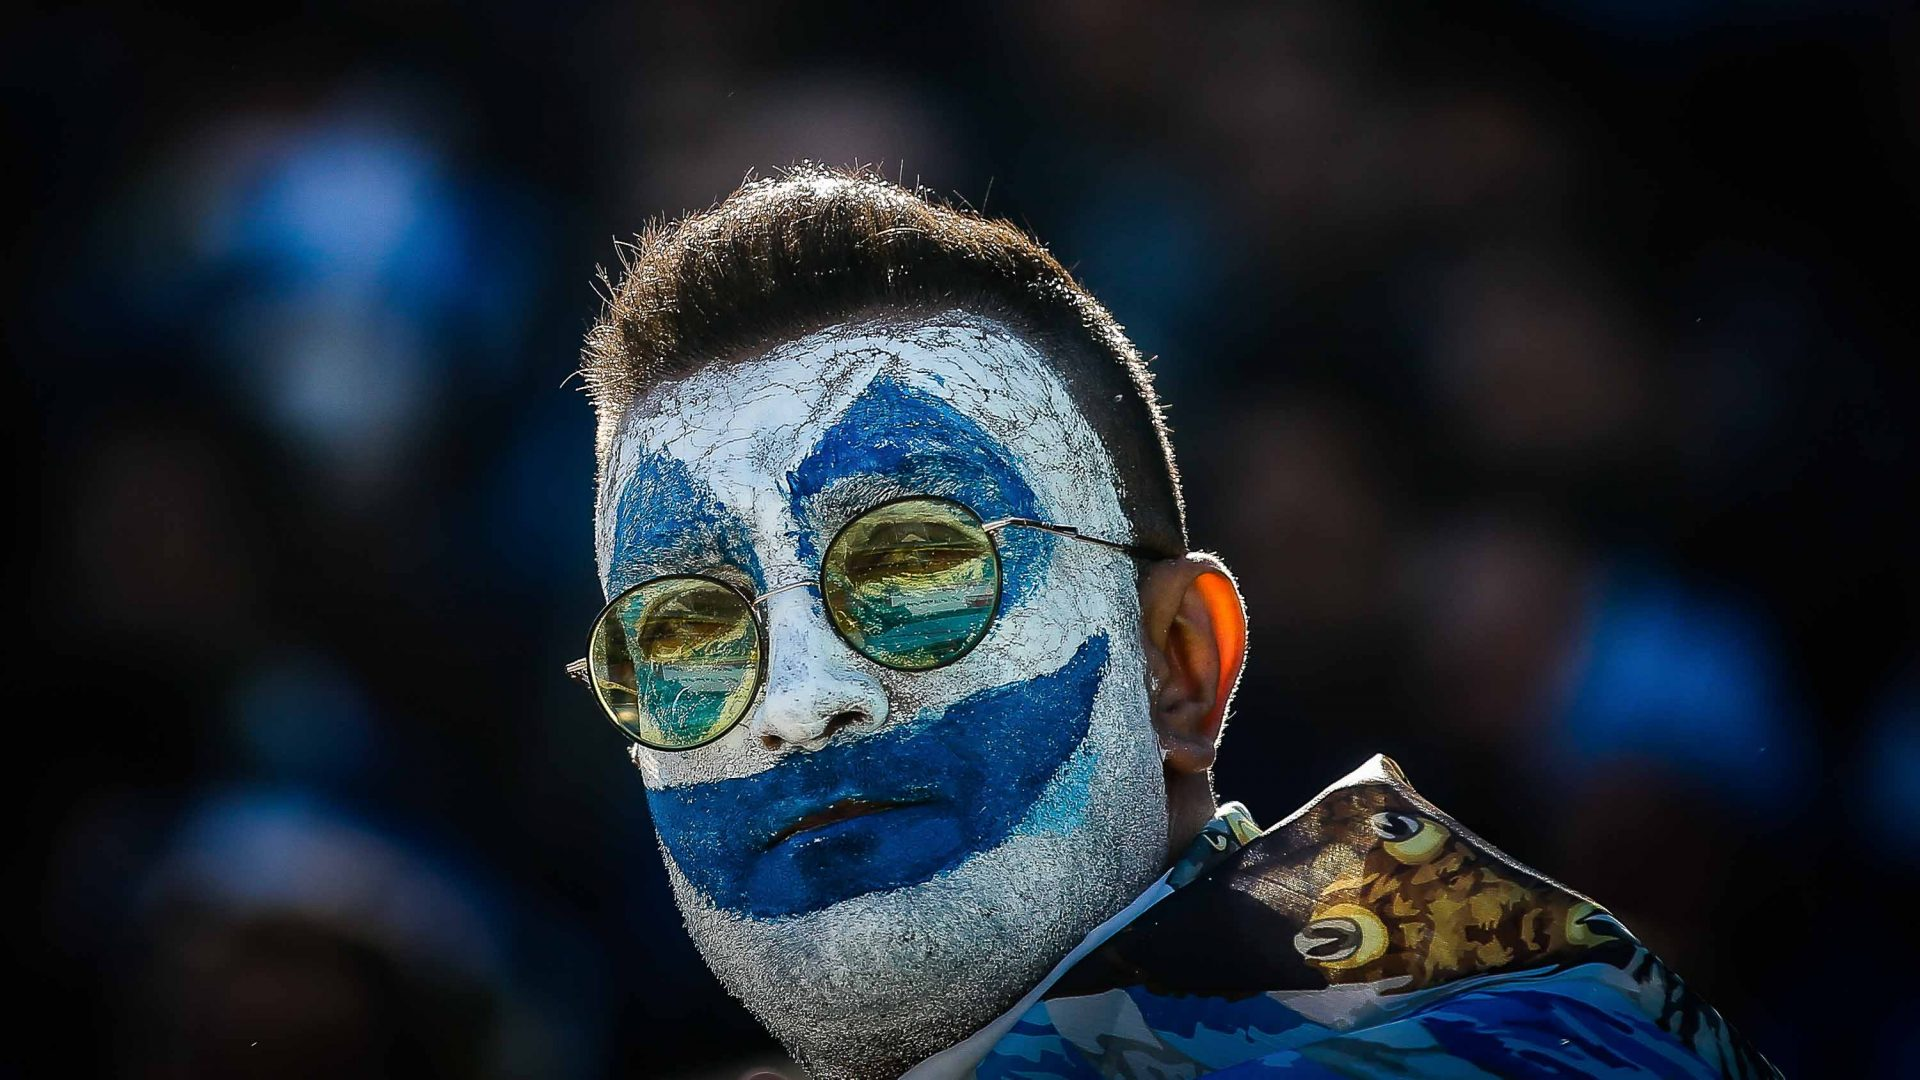 A Esteghlal fan at the Tehran Derby.